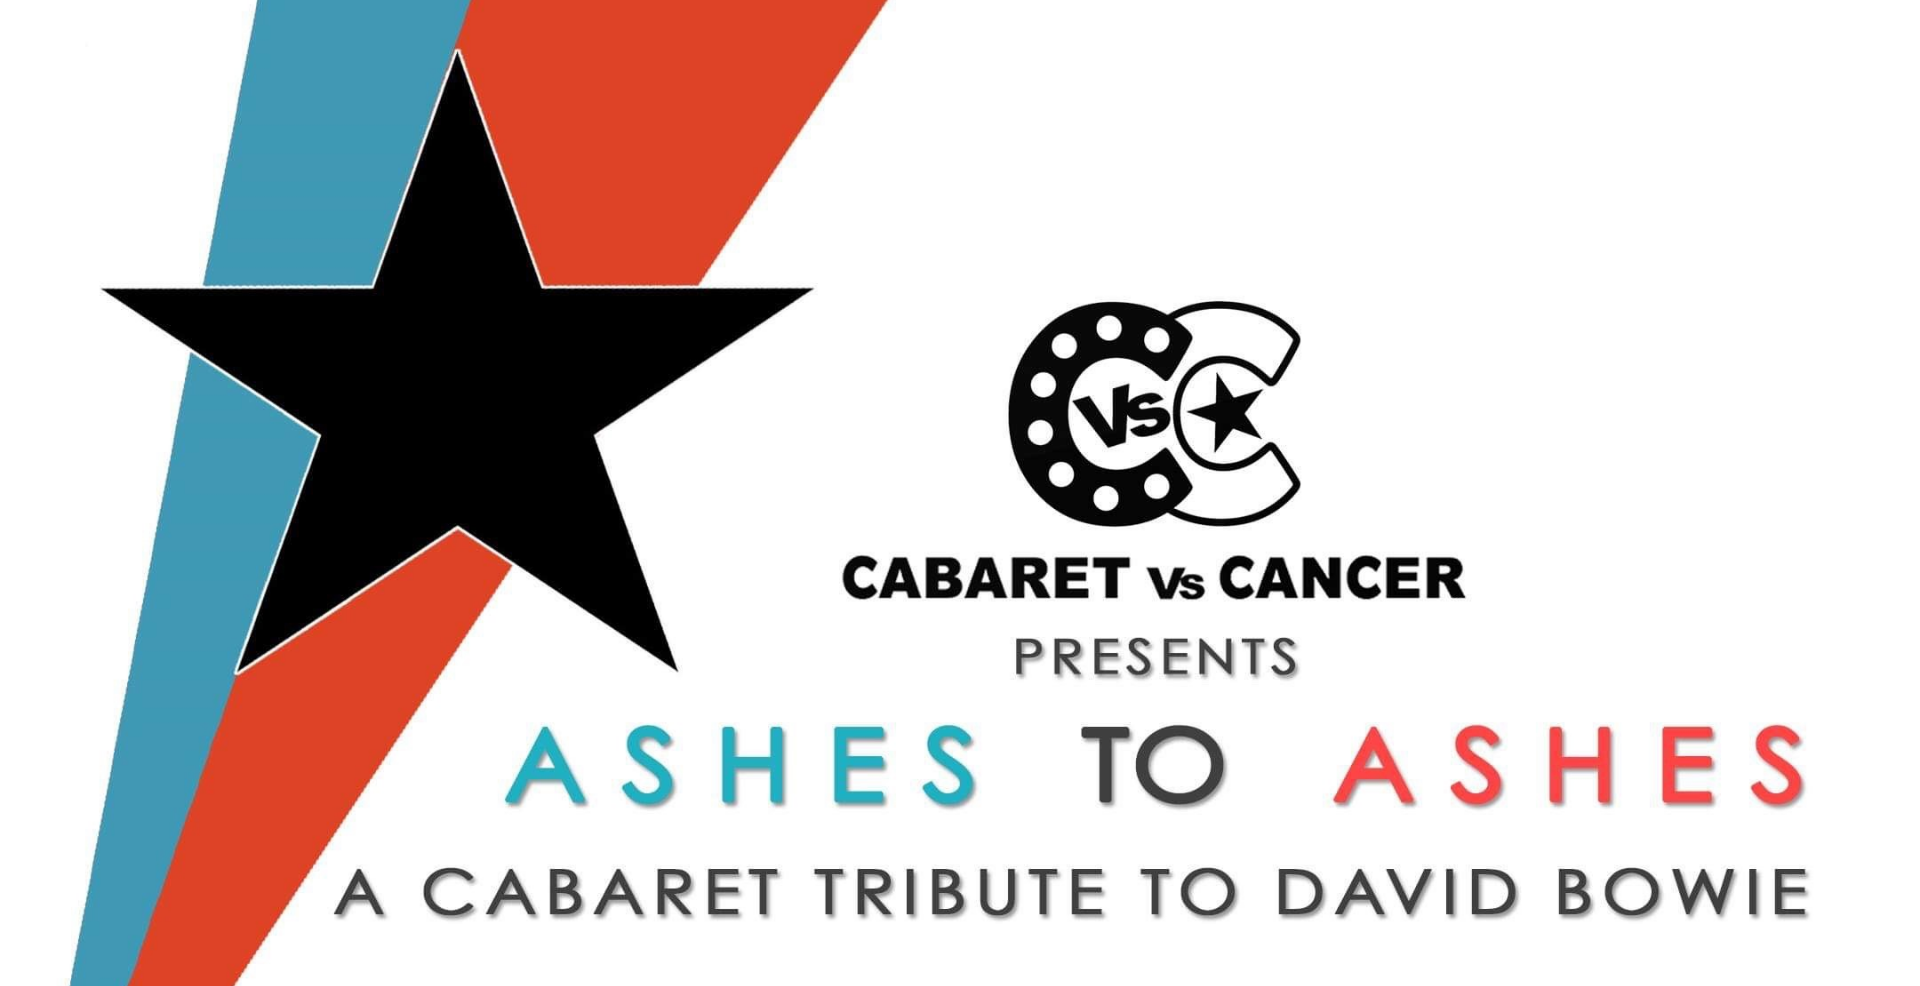 Ashes to Ashes IV, a cabaret tribute to David Bowie